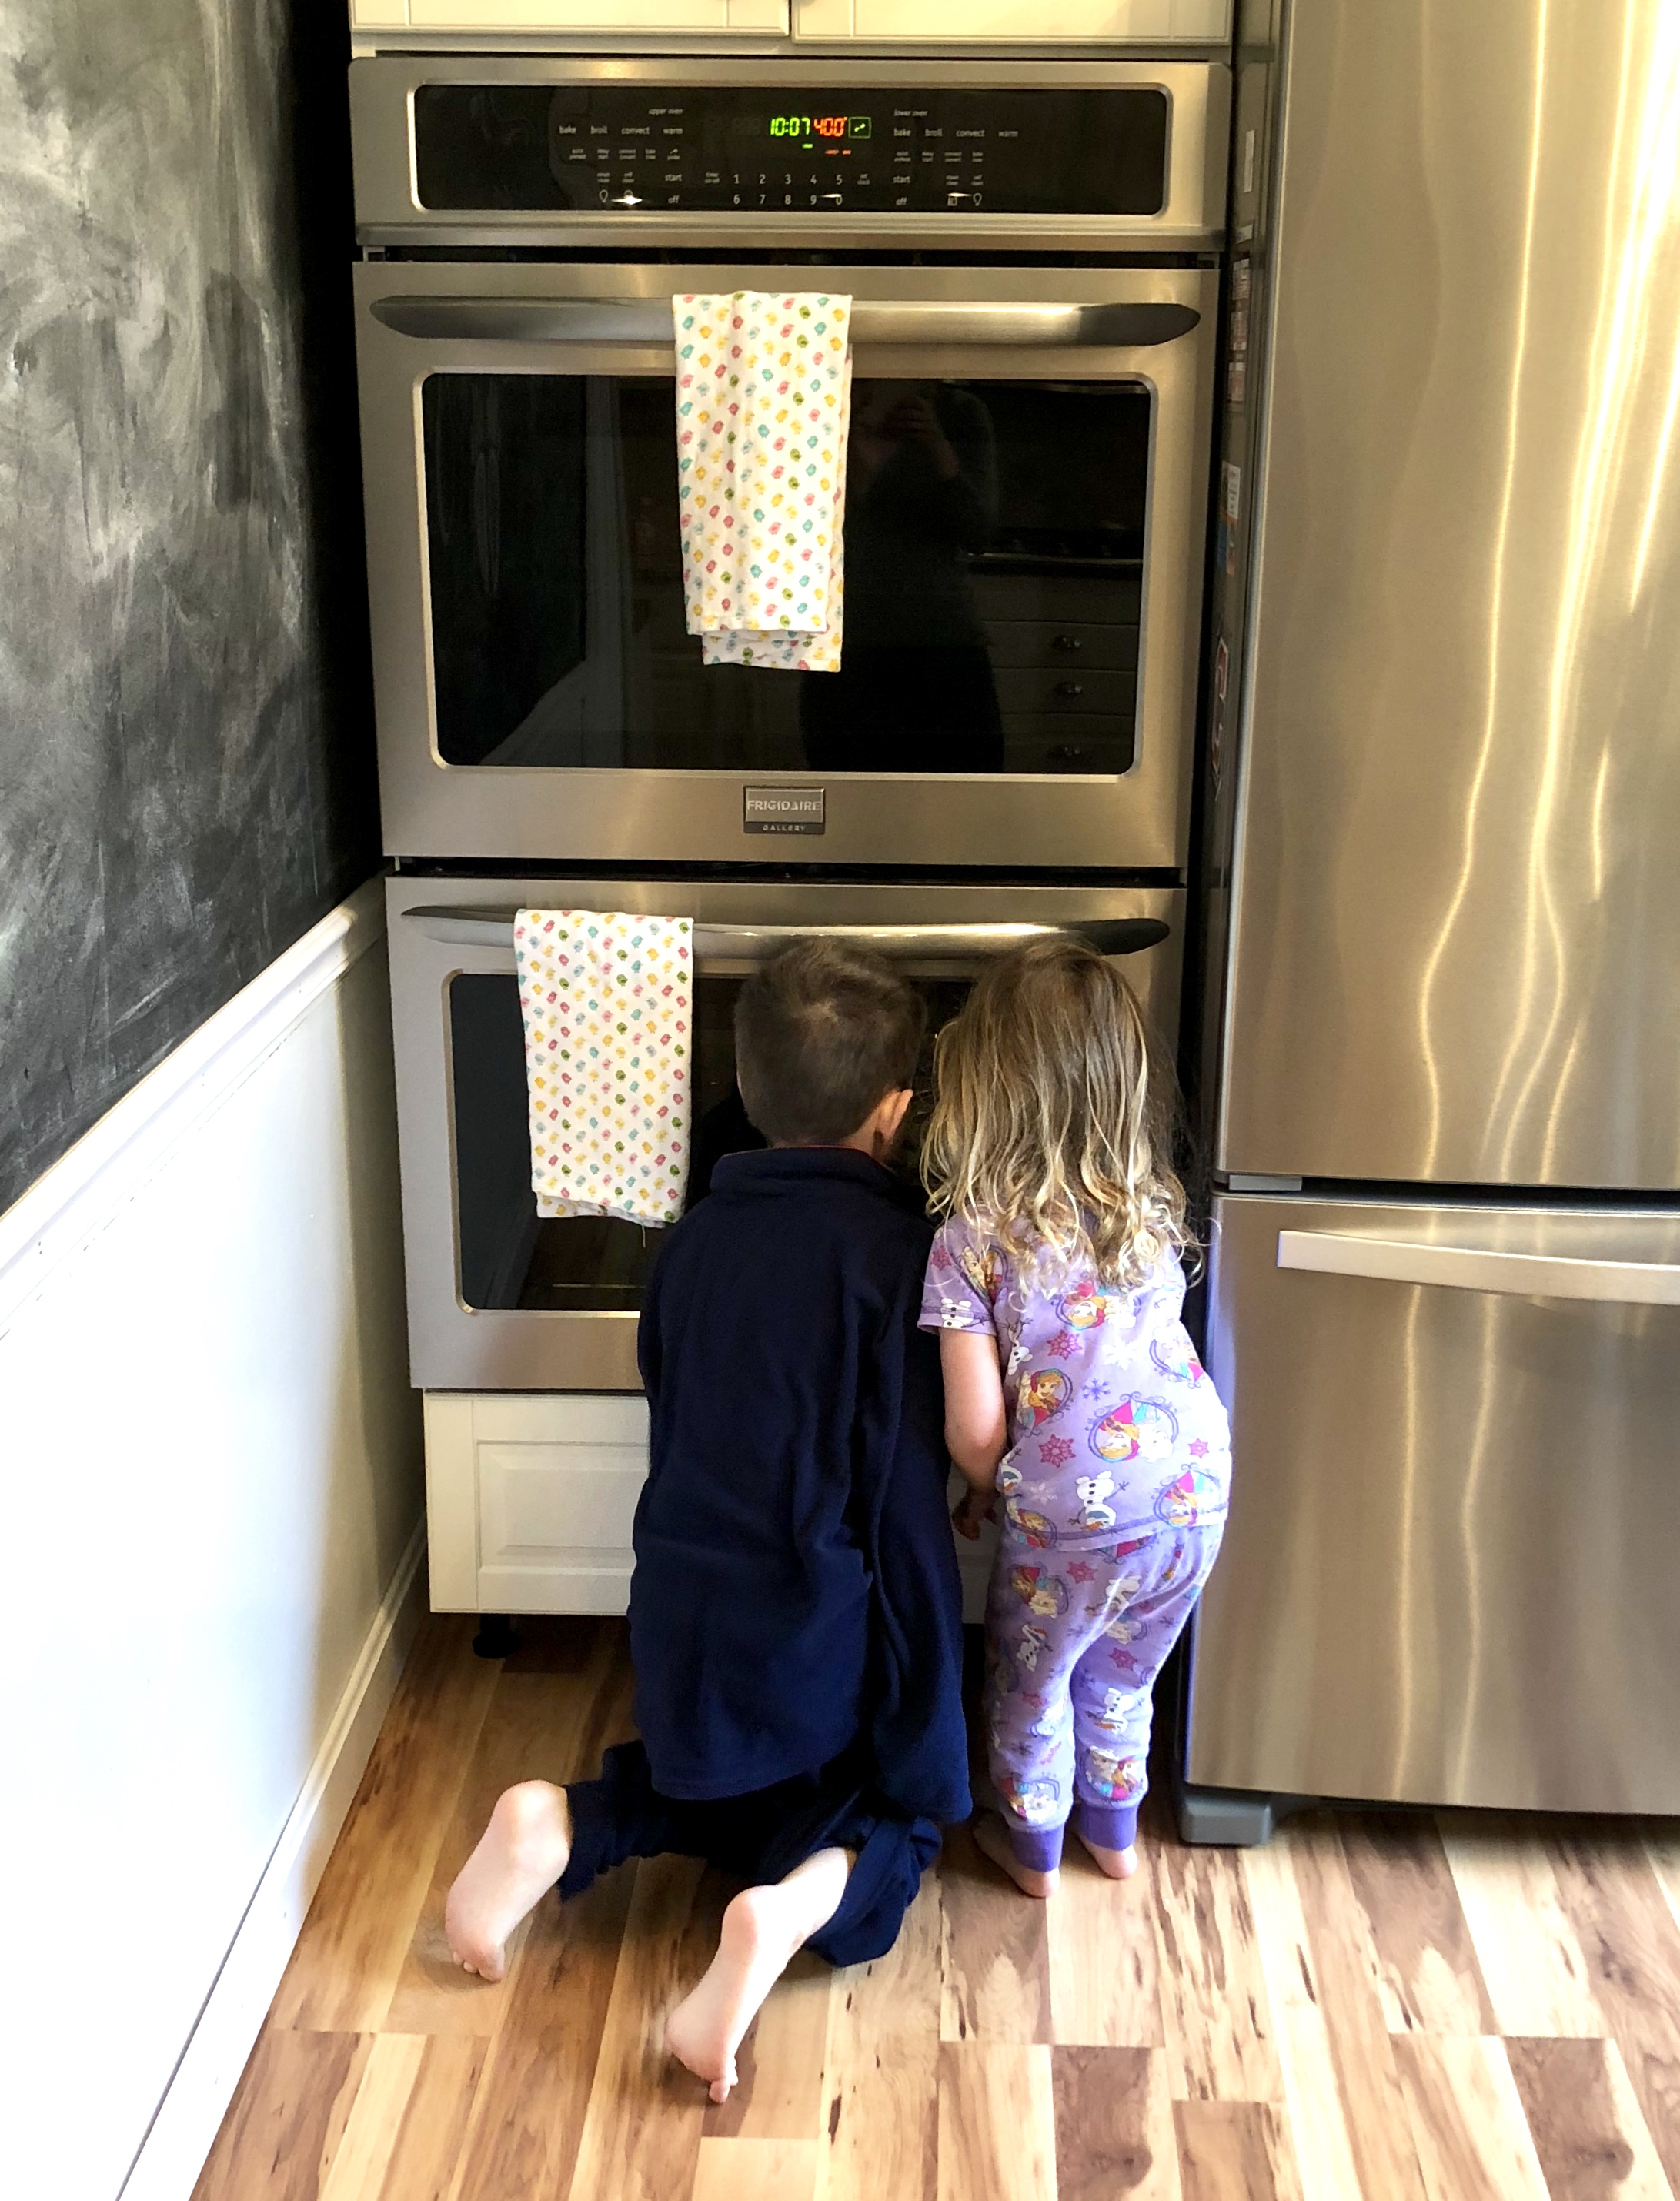 Kiddos waiting impatiently for their muffins to bake